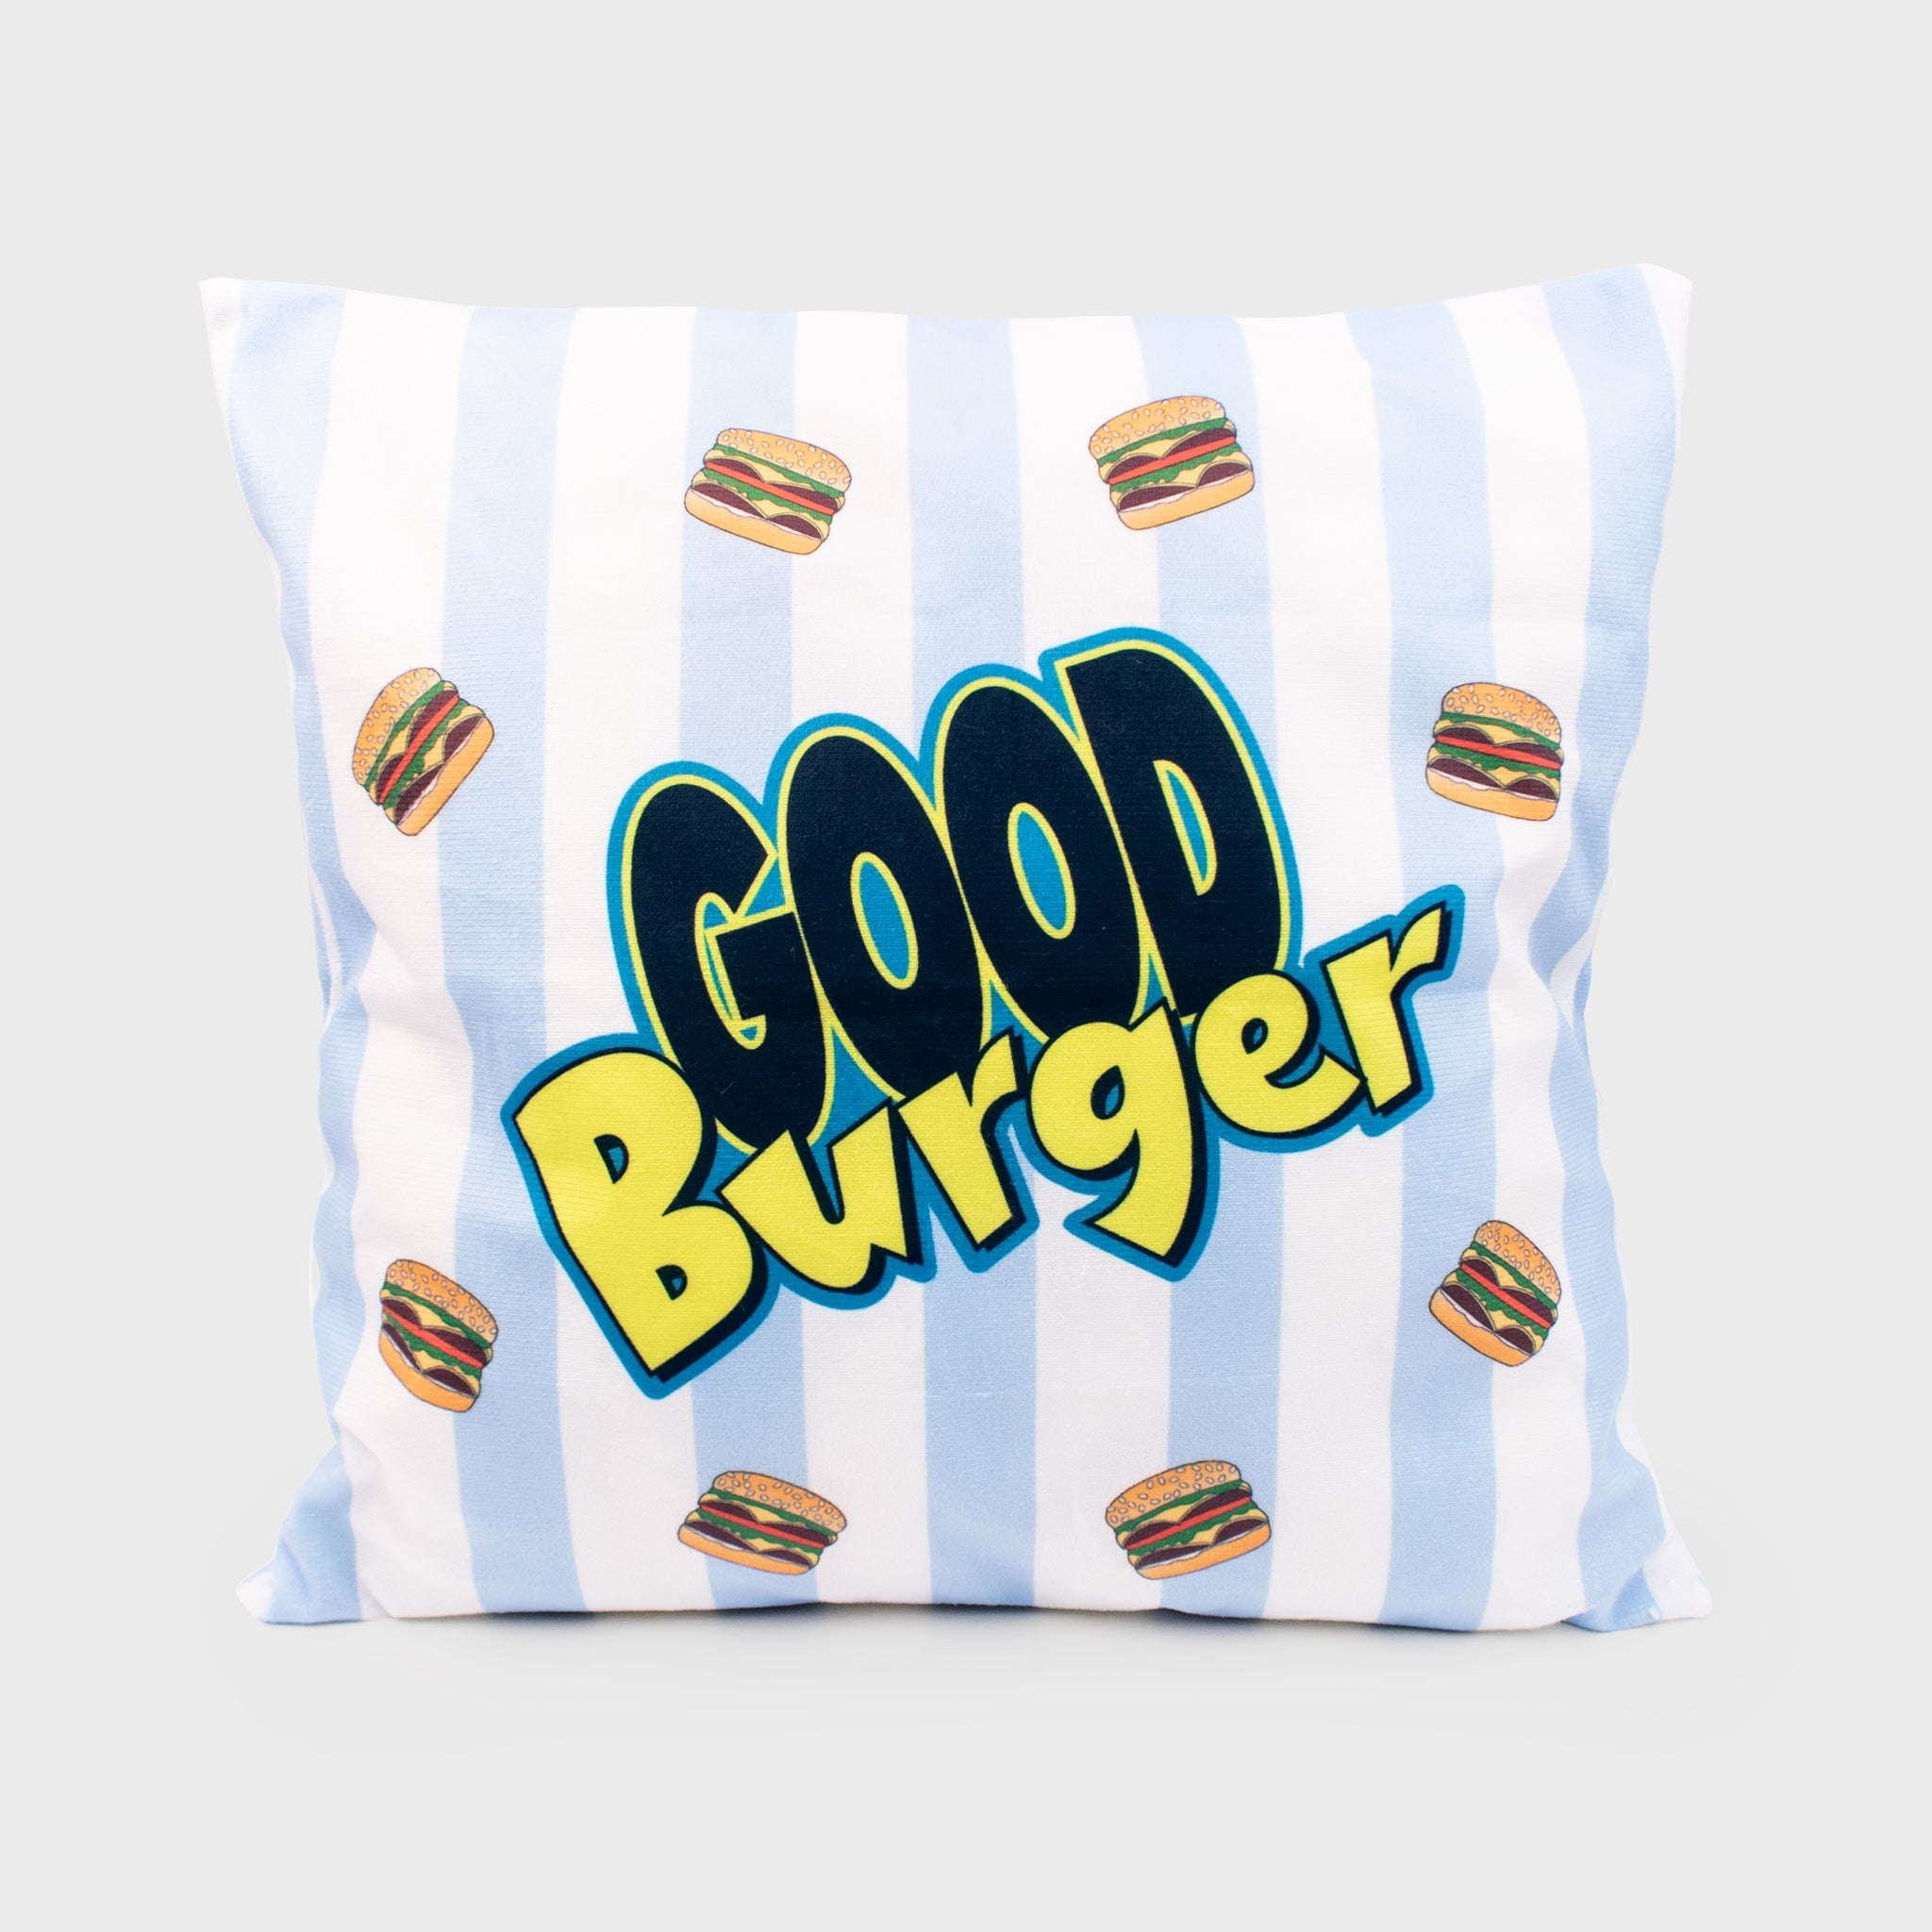 nick box nickelodeon collectible pillow case good burger 90s kids culturefly